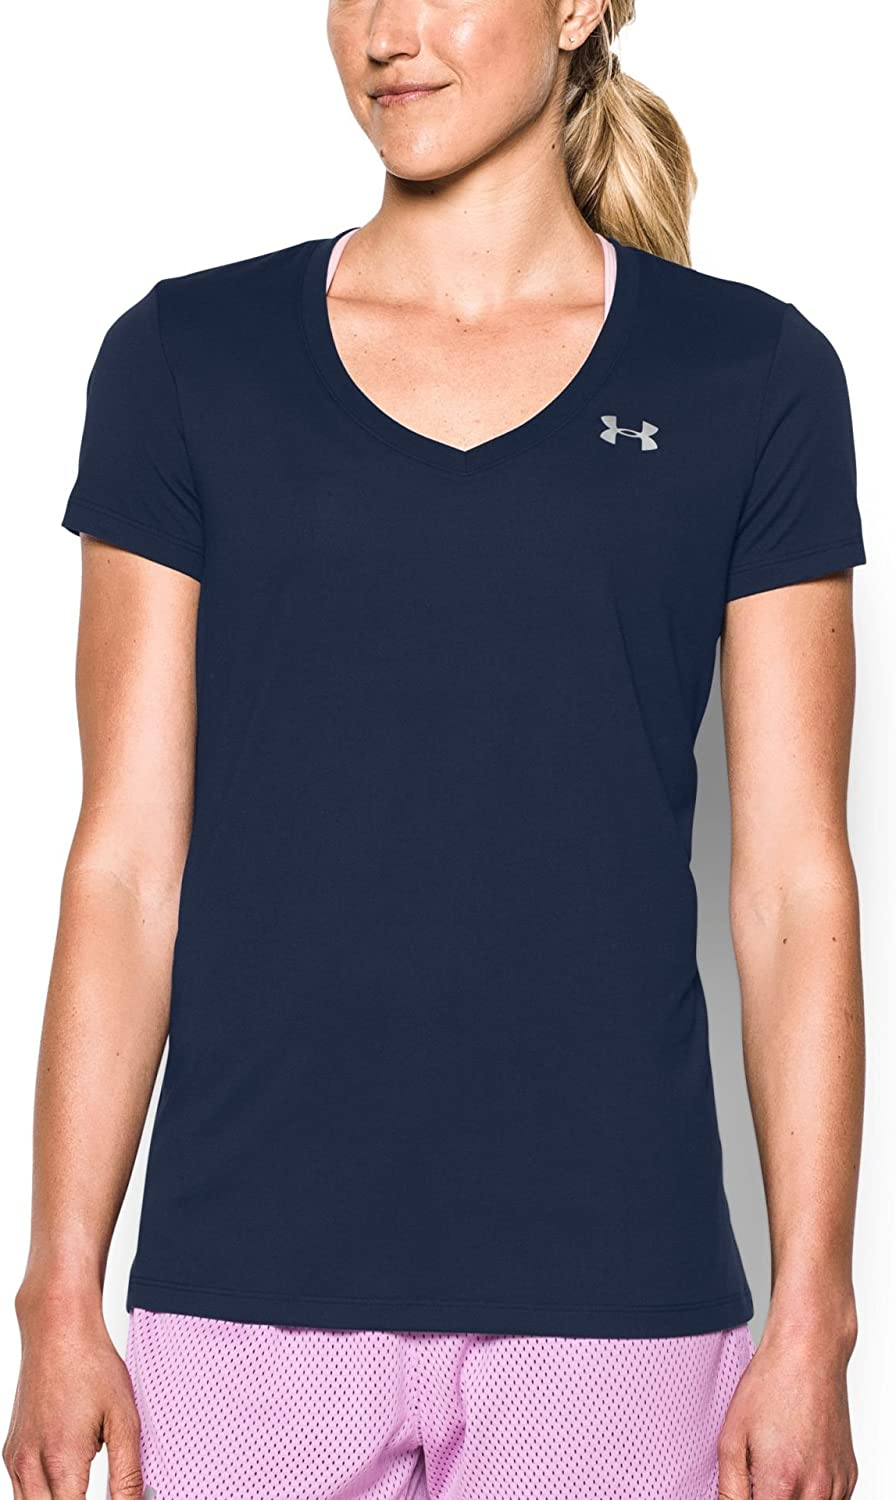 Under Armour Tech Ssv - Solid - Camiseta Mujer